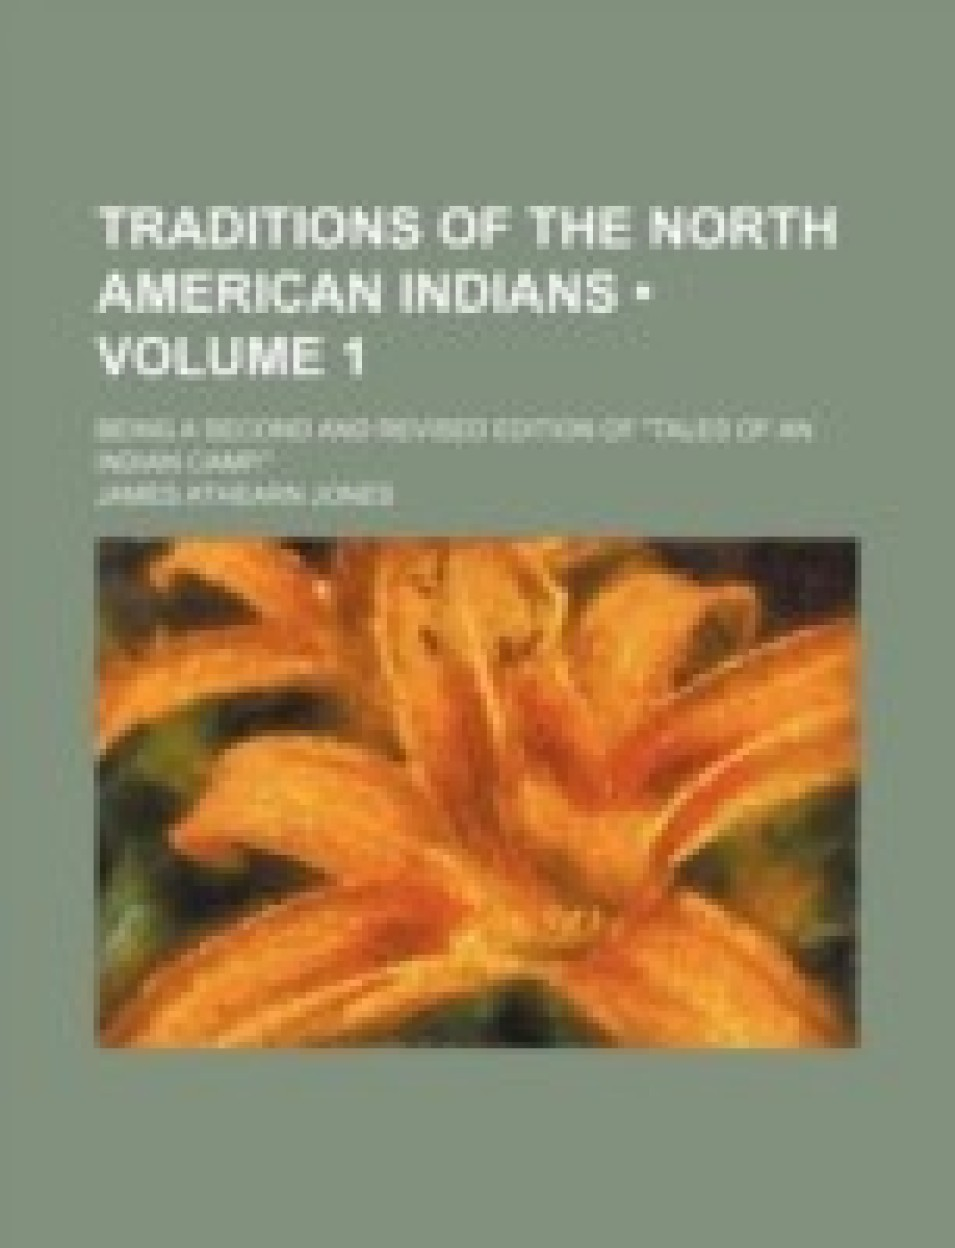 """Traditions of the North American Indians (Volume 1); Being a Second and Revised Edition of """"Tales of an Indian Camp."""""""